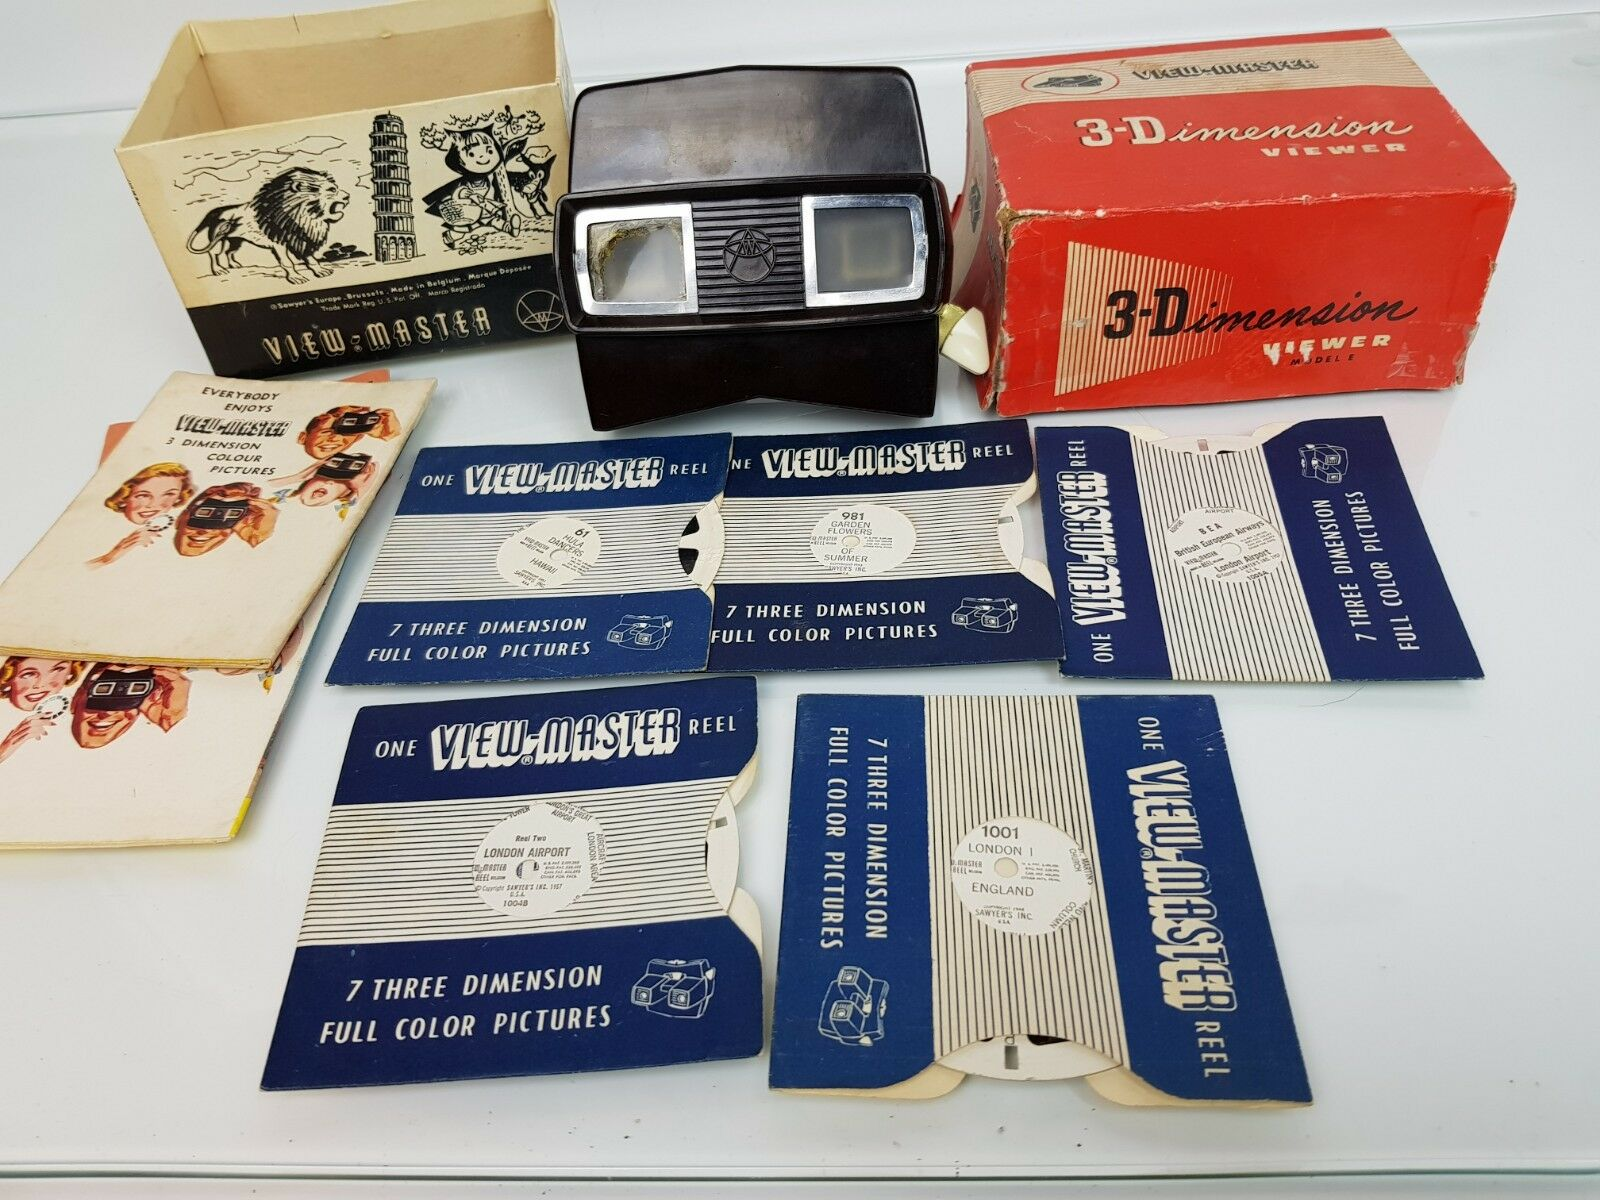 Vintage VIEW-MASTER 3-D VIEWER (Model E) with 5 Reels and Manual, Boxed